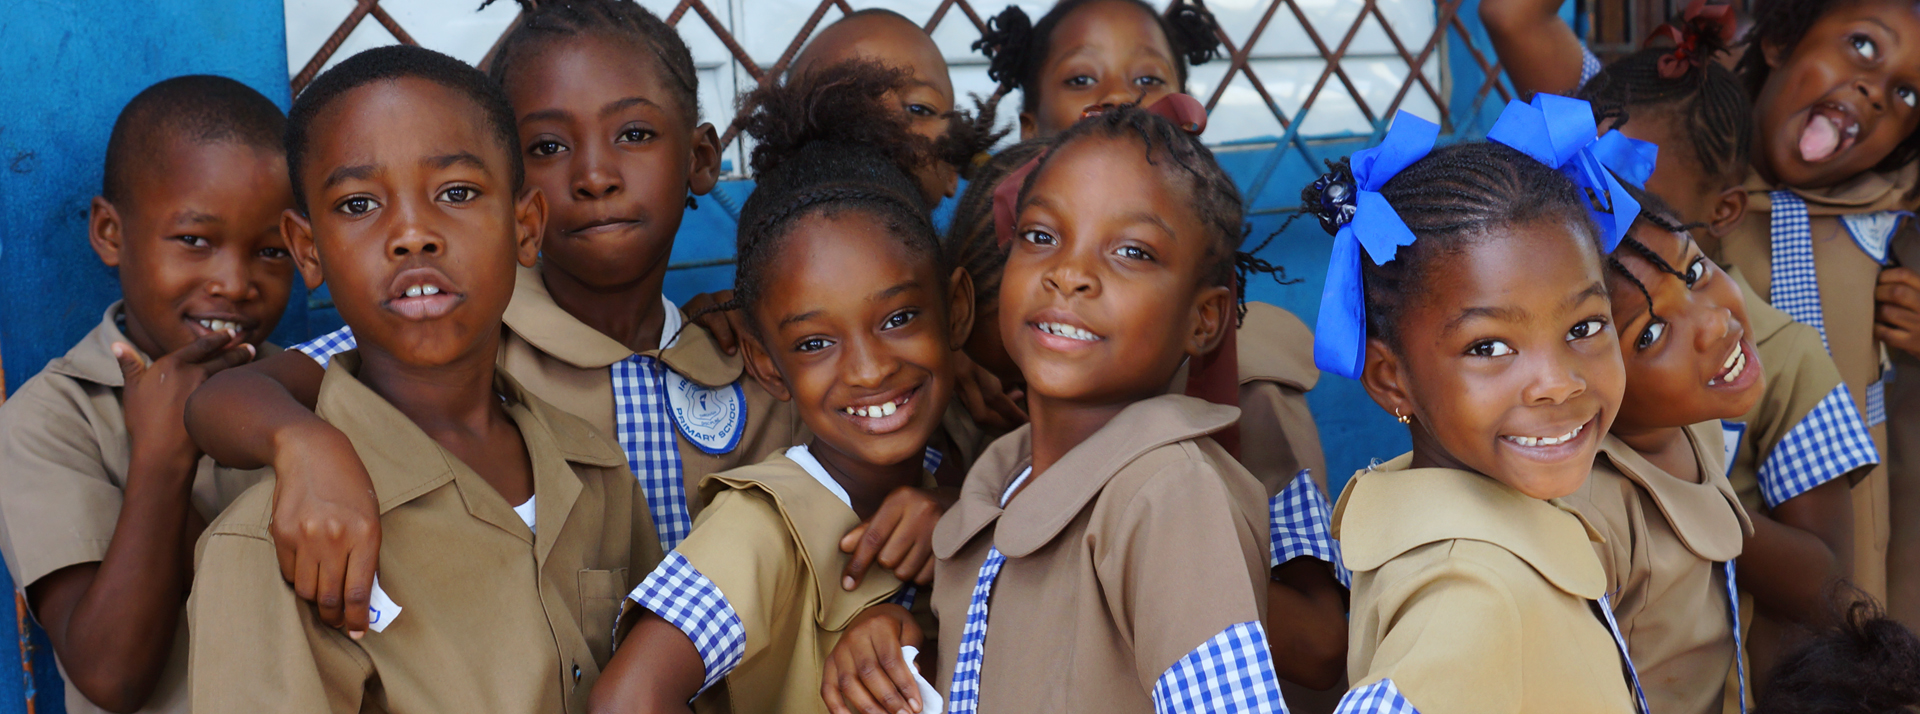 Assisting With Early Childhood Education In Jamaica